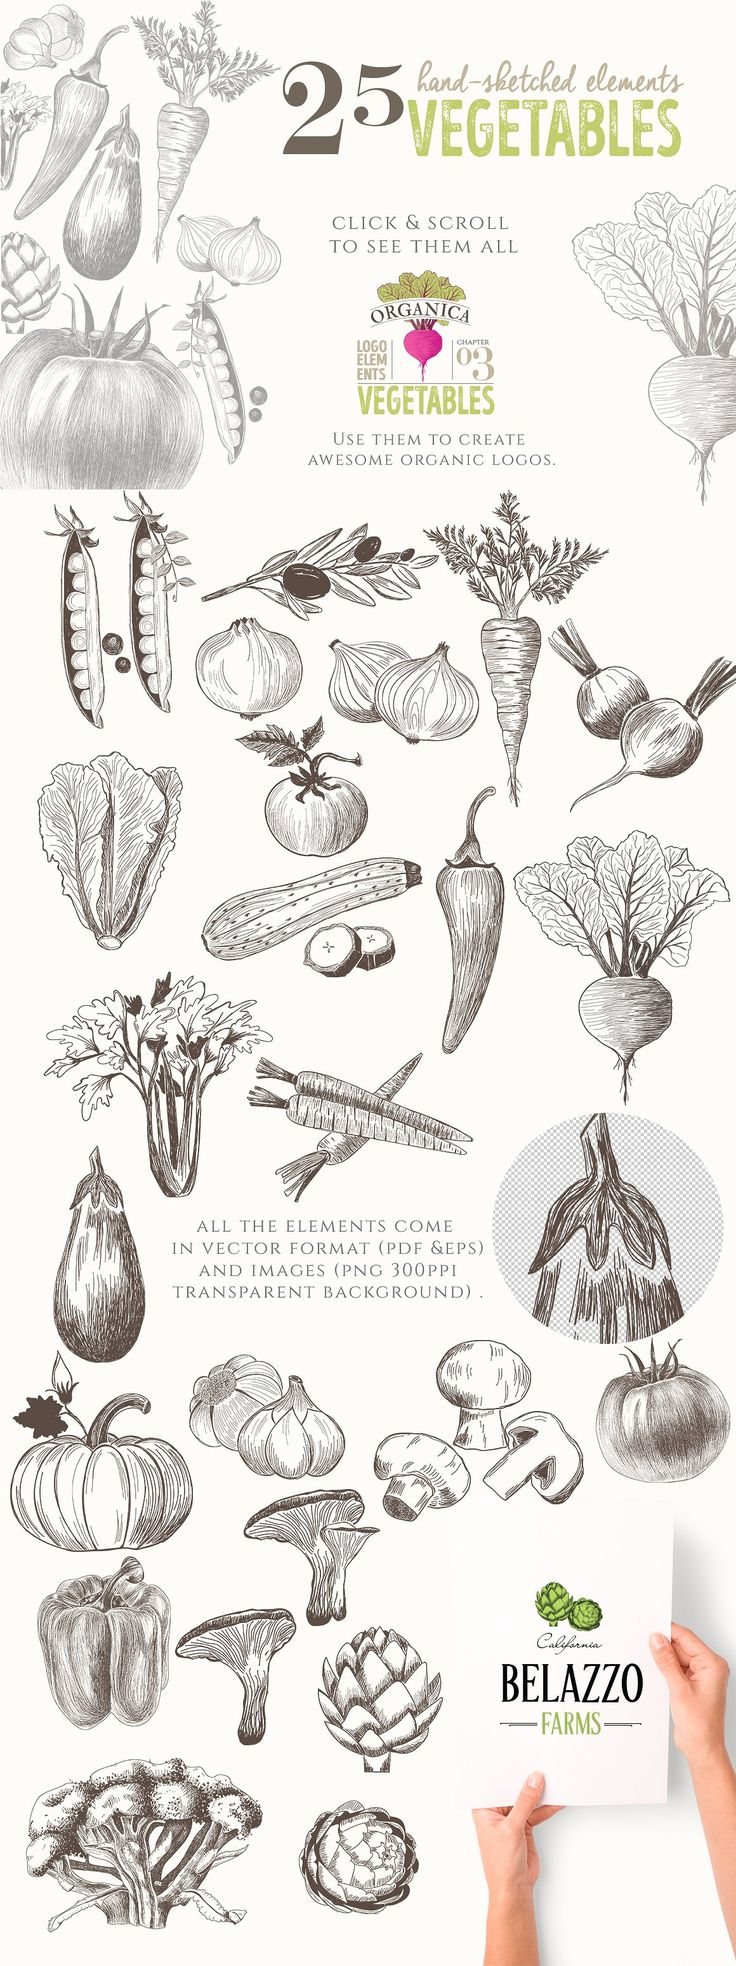 ORGANIC LOGO ELEMENTS – VEGETABLES by Friendly Label on @creativemarket logo, organic, vegetables, hand-sketched, hand-drawn, vector, illustrations, graphics, beet, carrot, olive, tomato, onion, radish, peas, lettuce, zucchini, chili, celery, eggplant, garlic, mushrooms, broccoli, artichoke